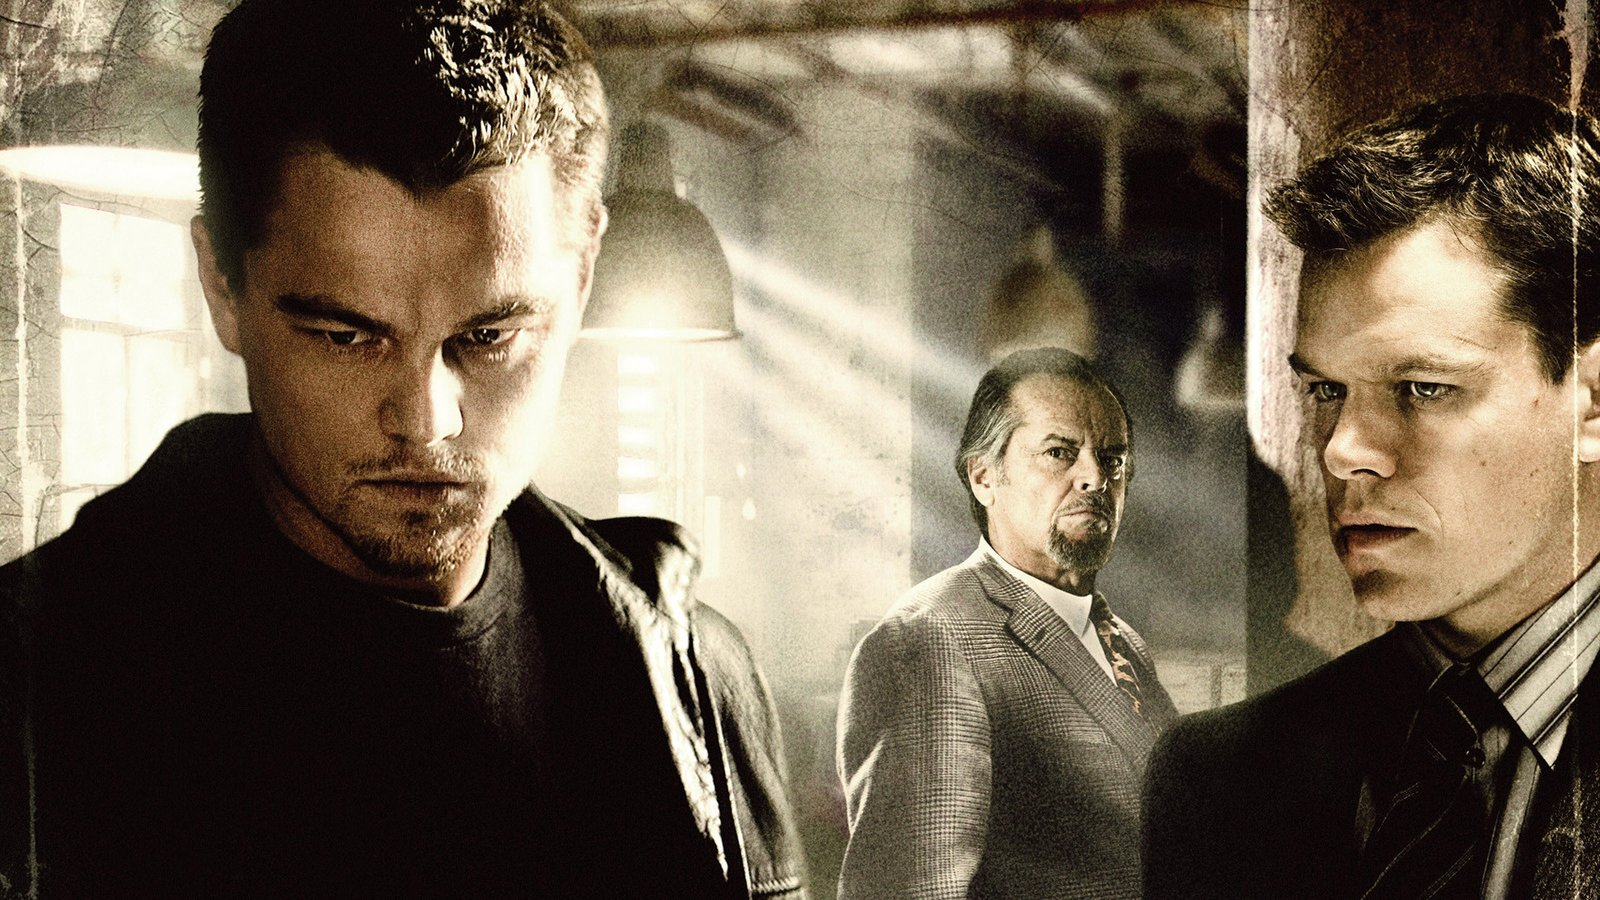 / The Departed